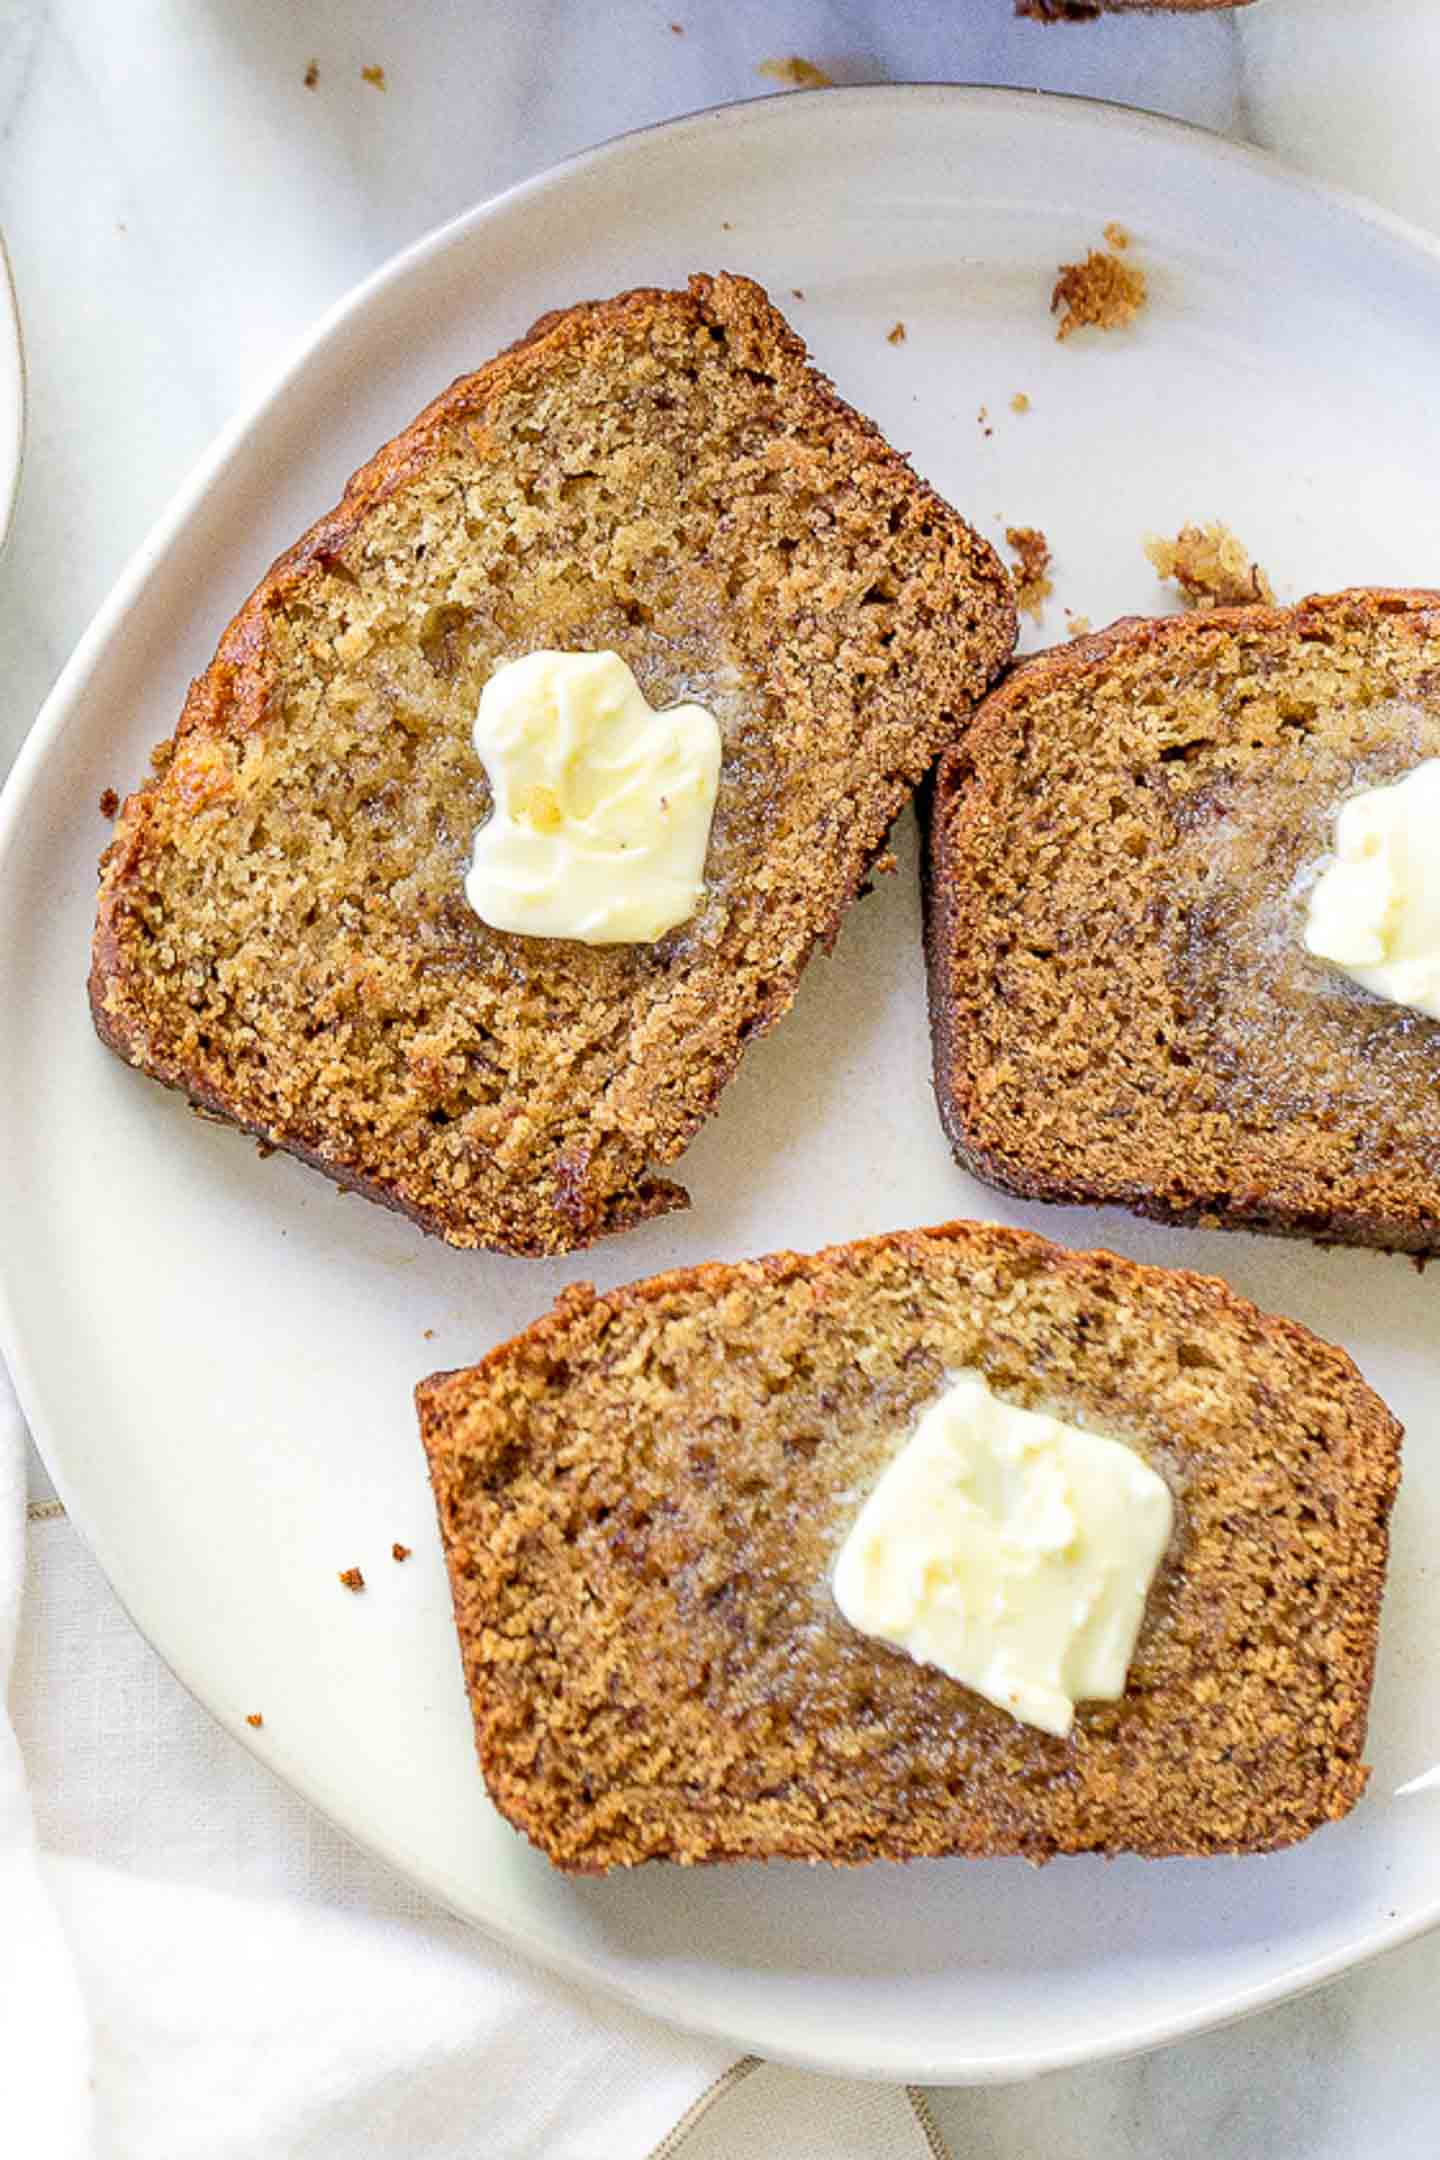 Slices of banana bread with melted butter.